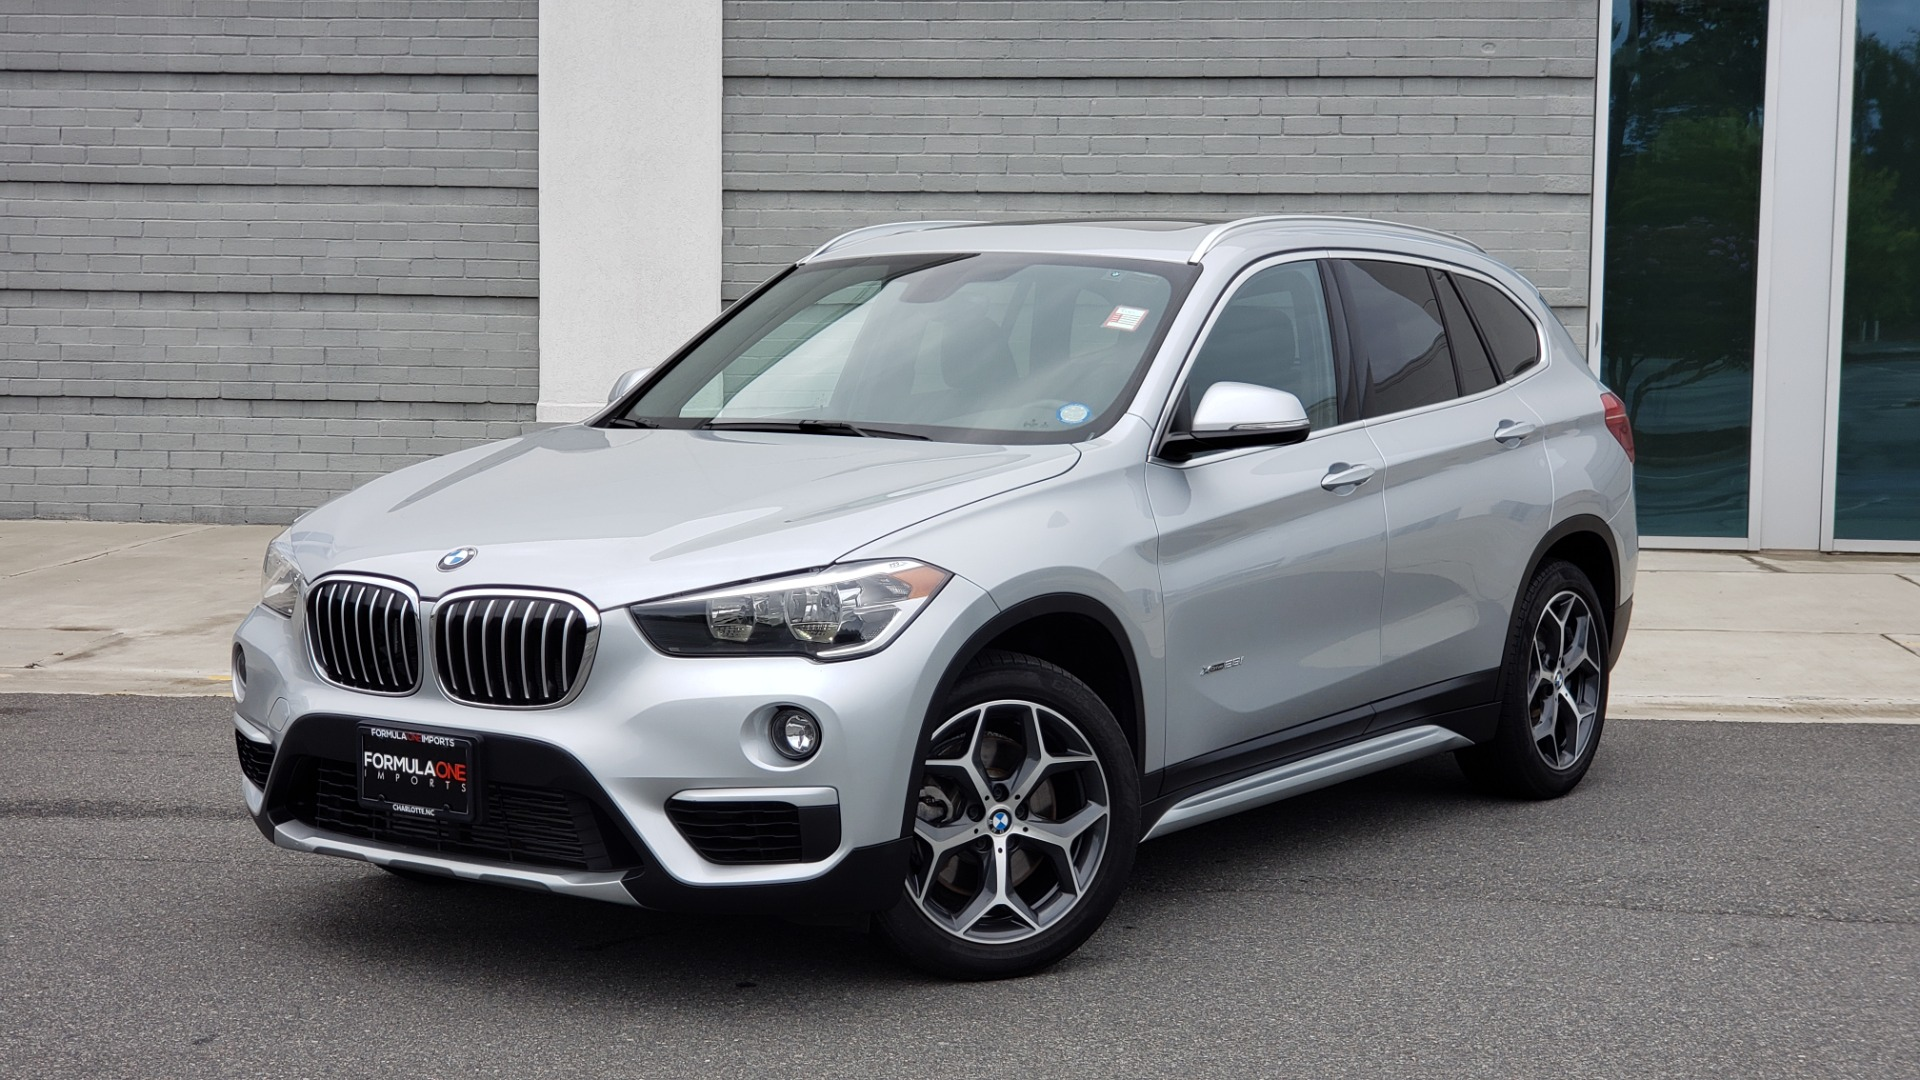 Used 2018 BMW X1 XDRIVE38I / NAV / CONV PKG / PANO-ROOF / HTD STS / REARVIEW for sale $28,995 at Formula Imports in Charlotte NC 28227 1